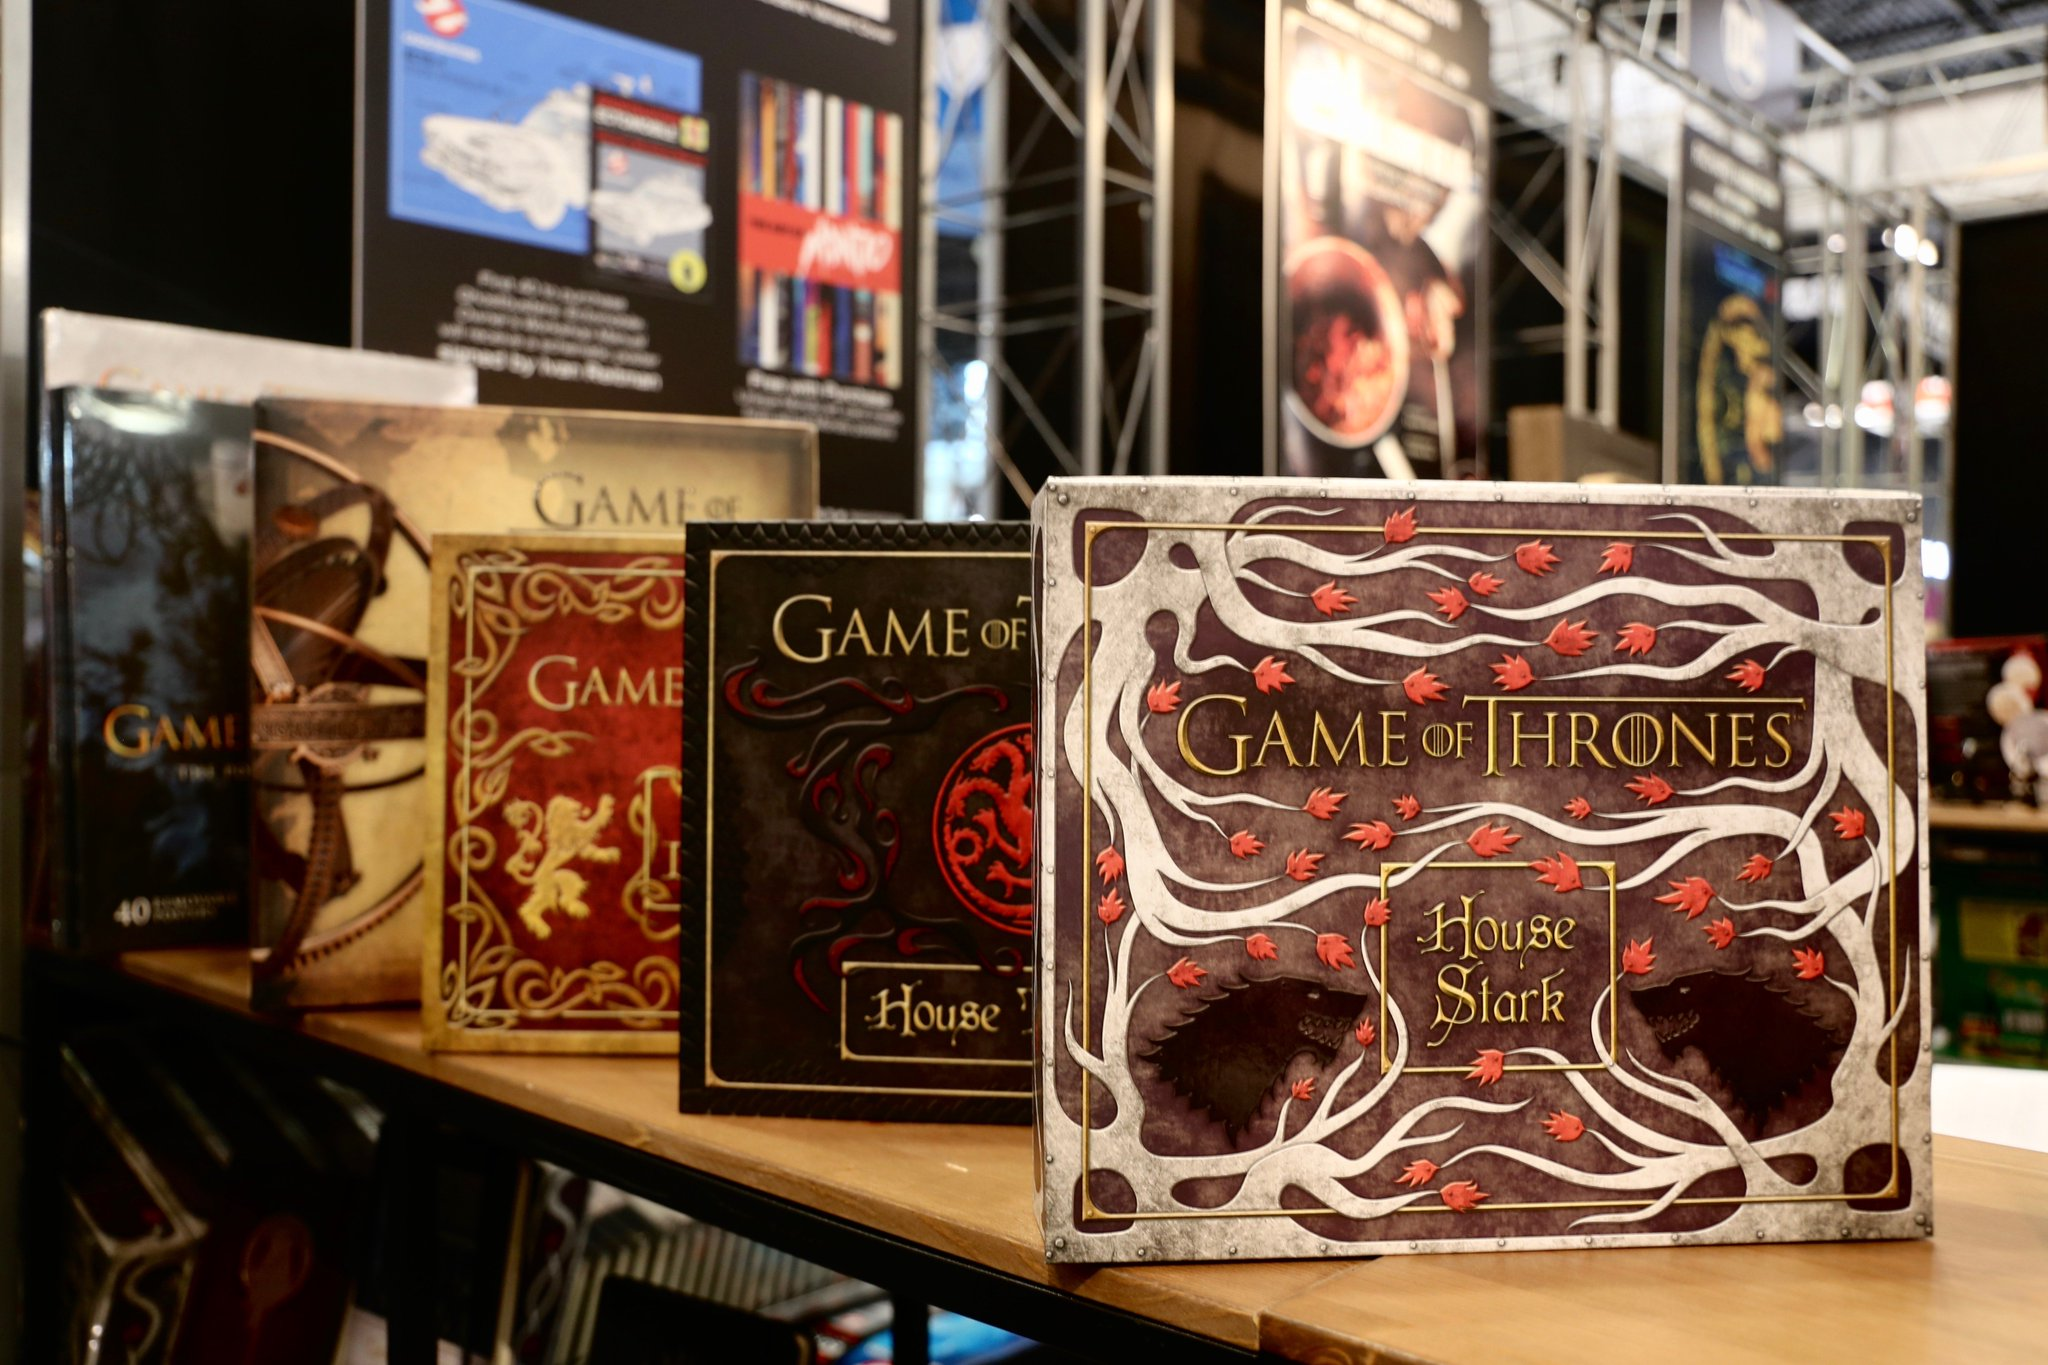 Rally the realm.  Purchase exclusive #GameofThrones merchandise from @insighteditions' #NYCC booth #1946. https://t.co/nMGlC57oTa